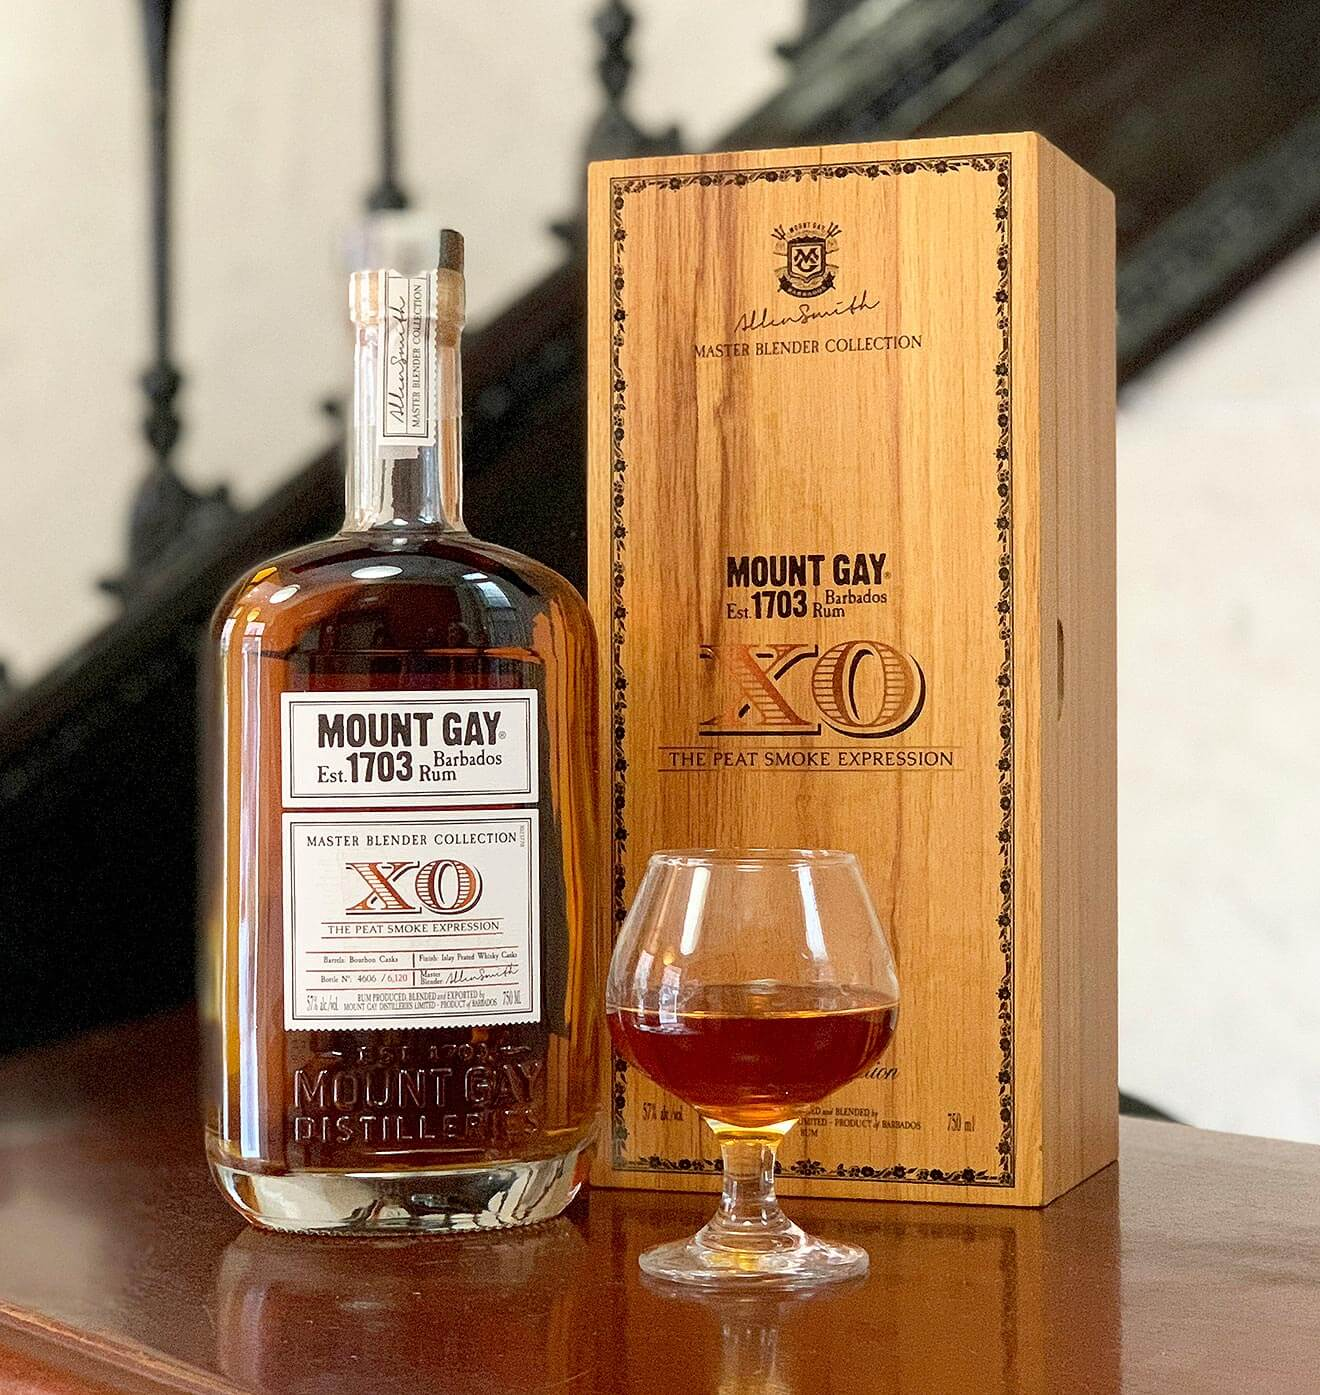 Mount Gay Releases Limited Edition XO The Peat Smoke Expression, bottle, glass and package on table